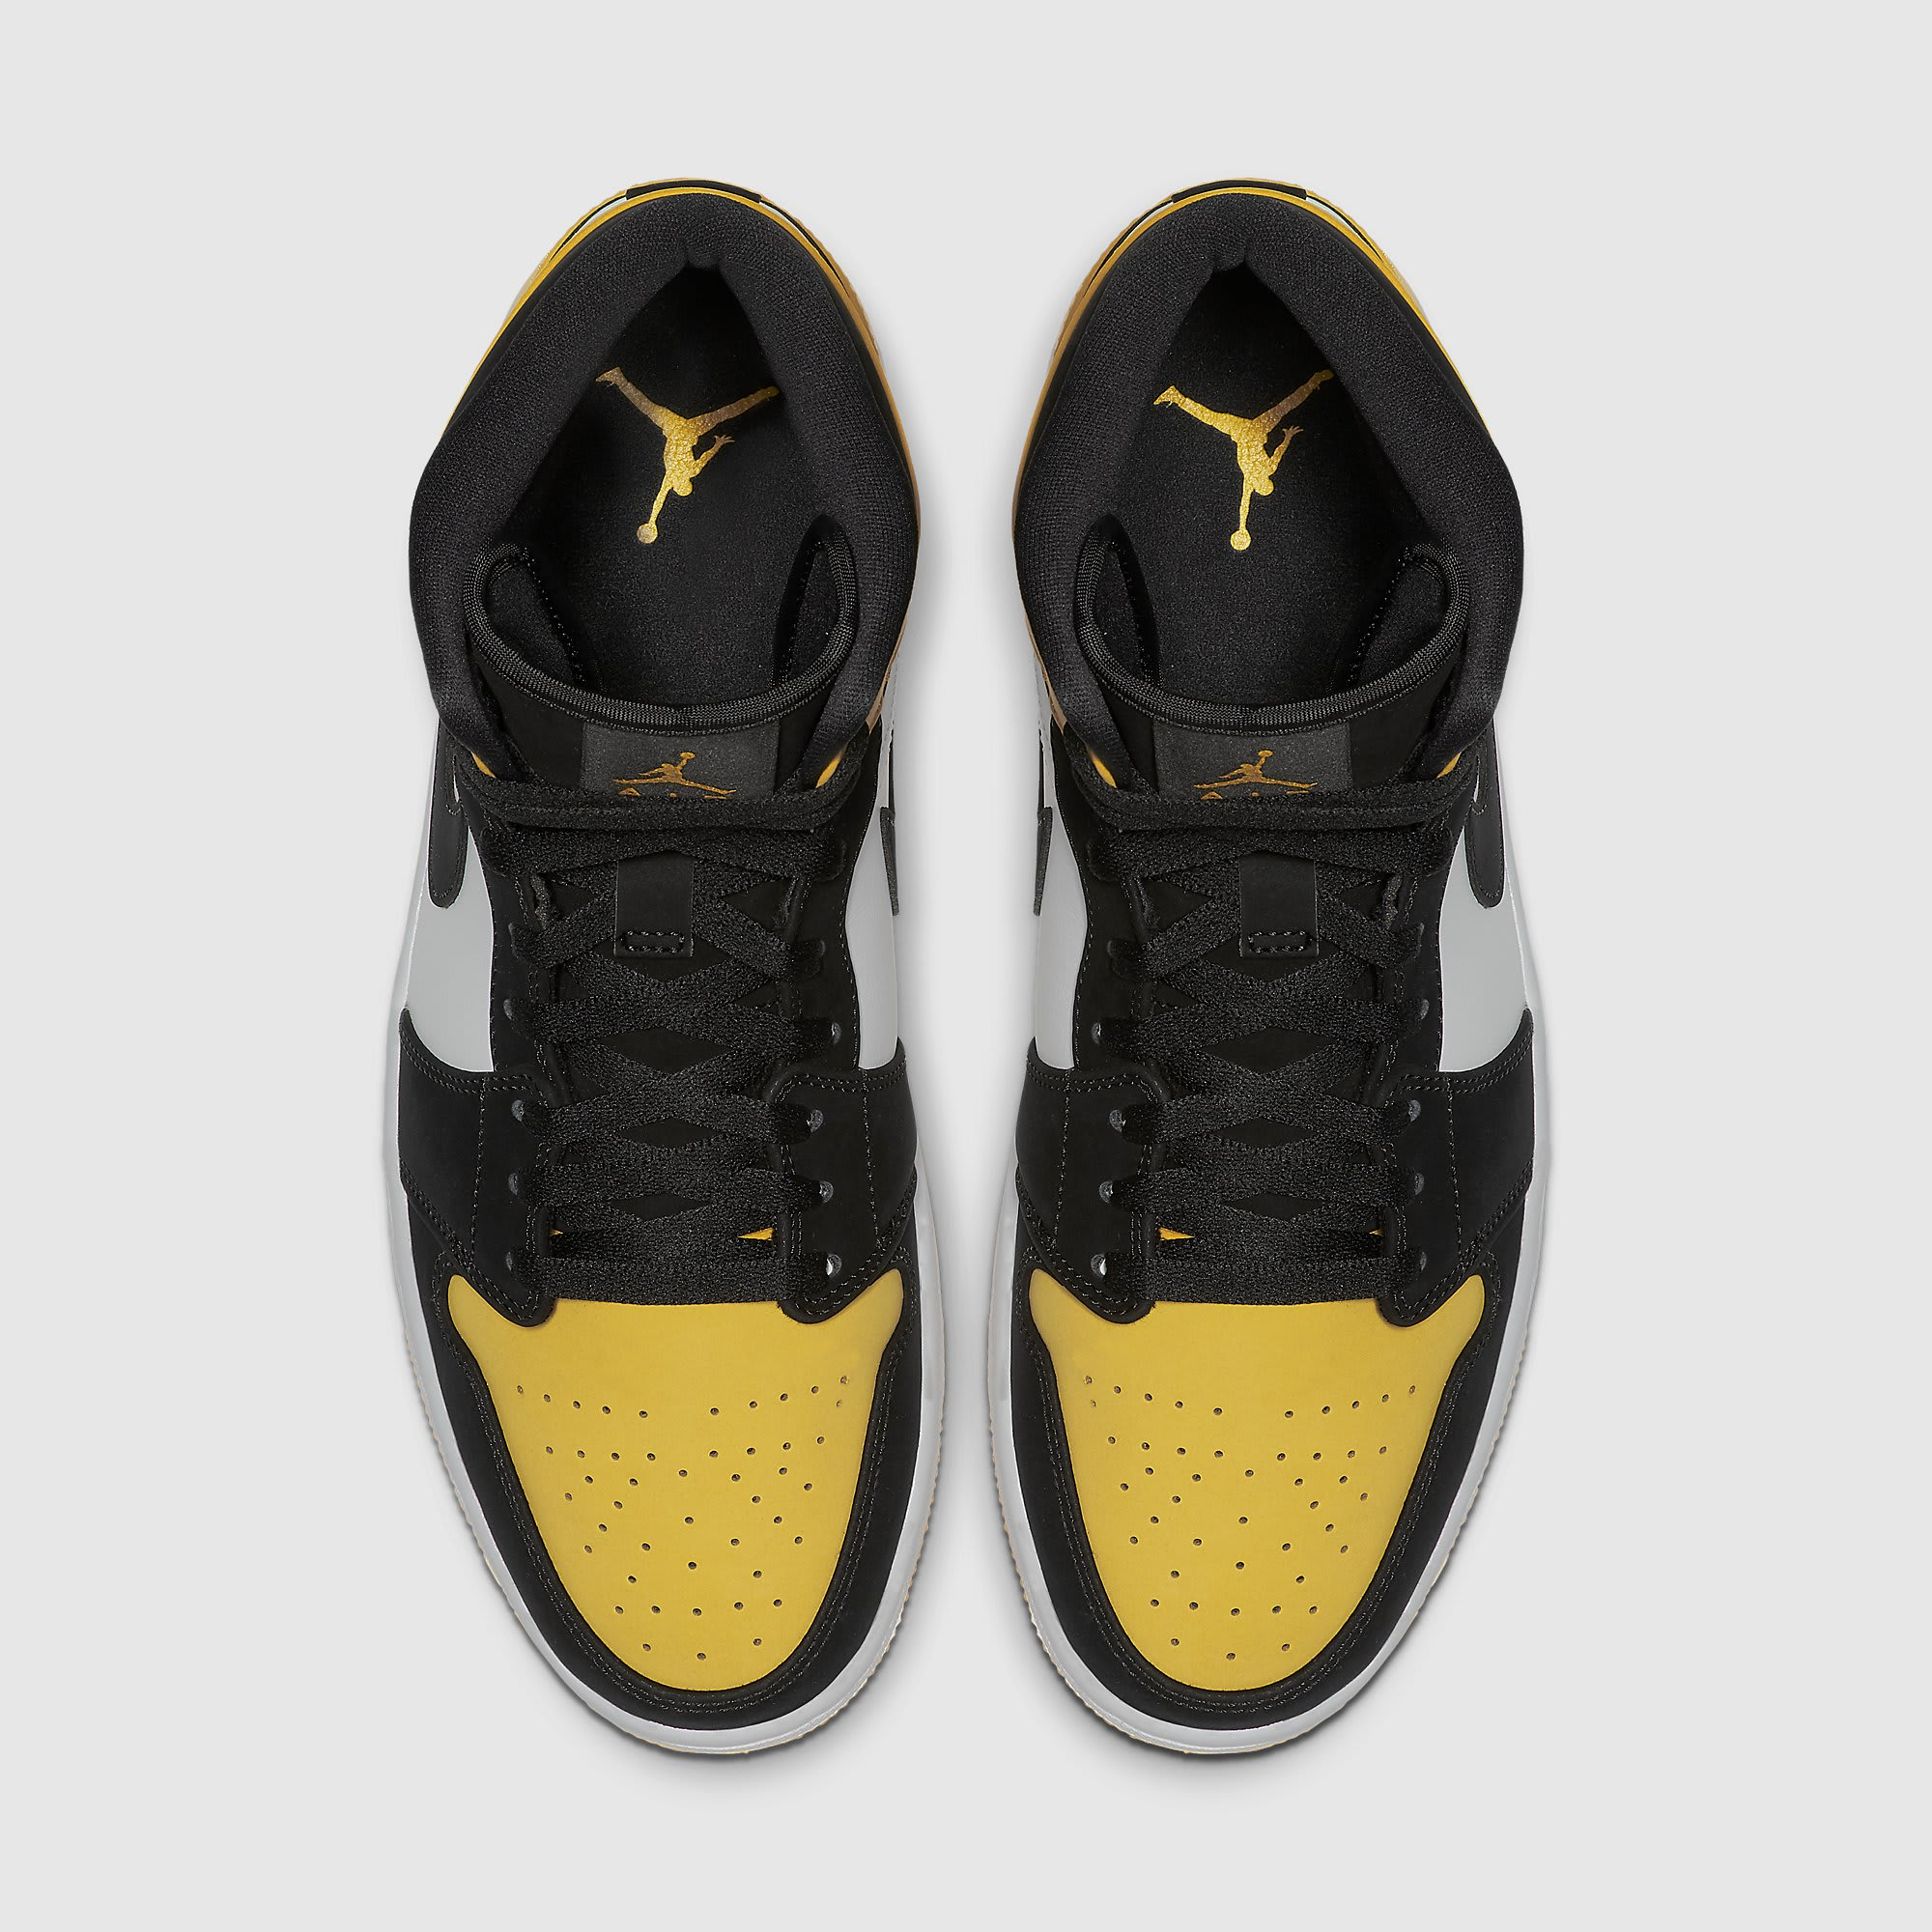 The Jordan 1 Mid 'Yellow Toe' Launches Exclusively At